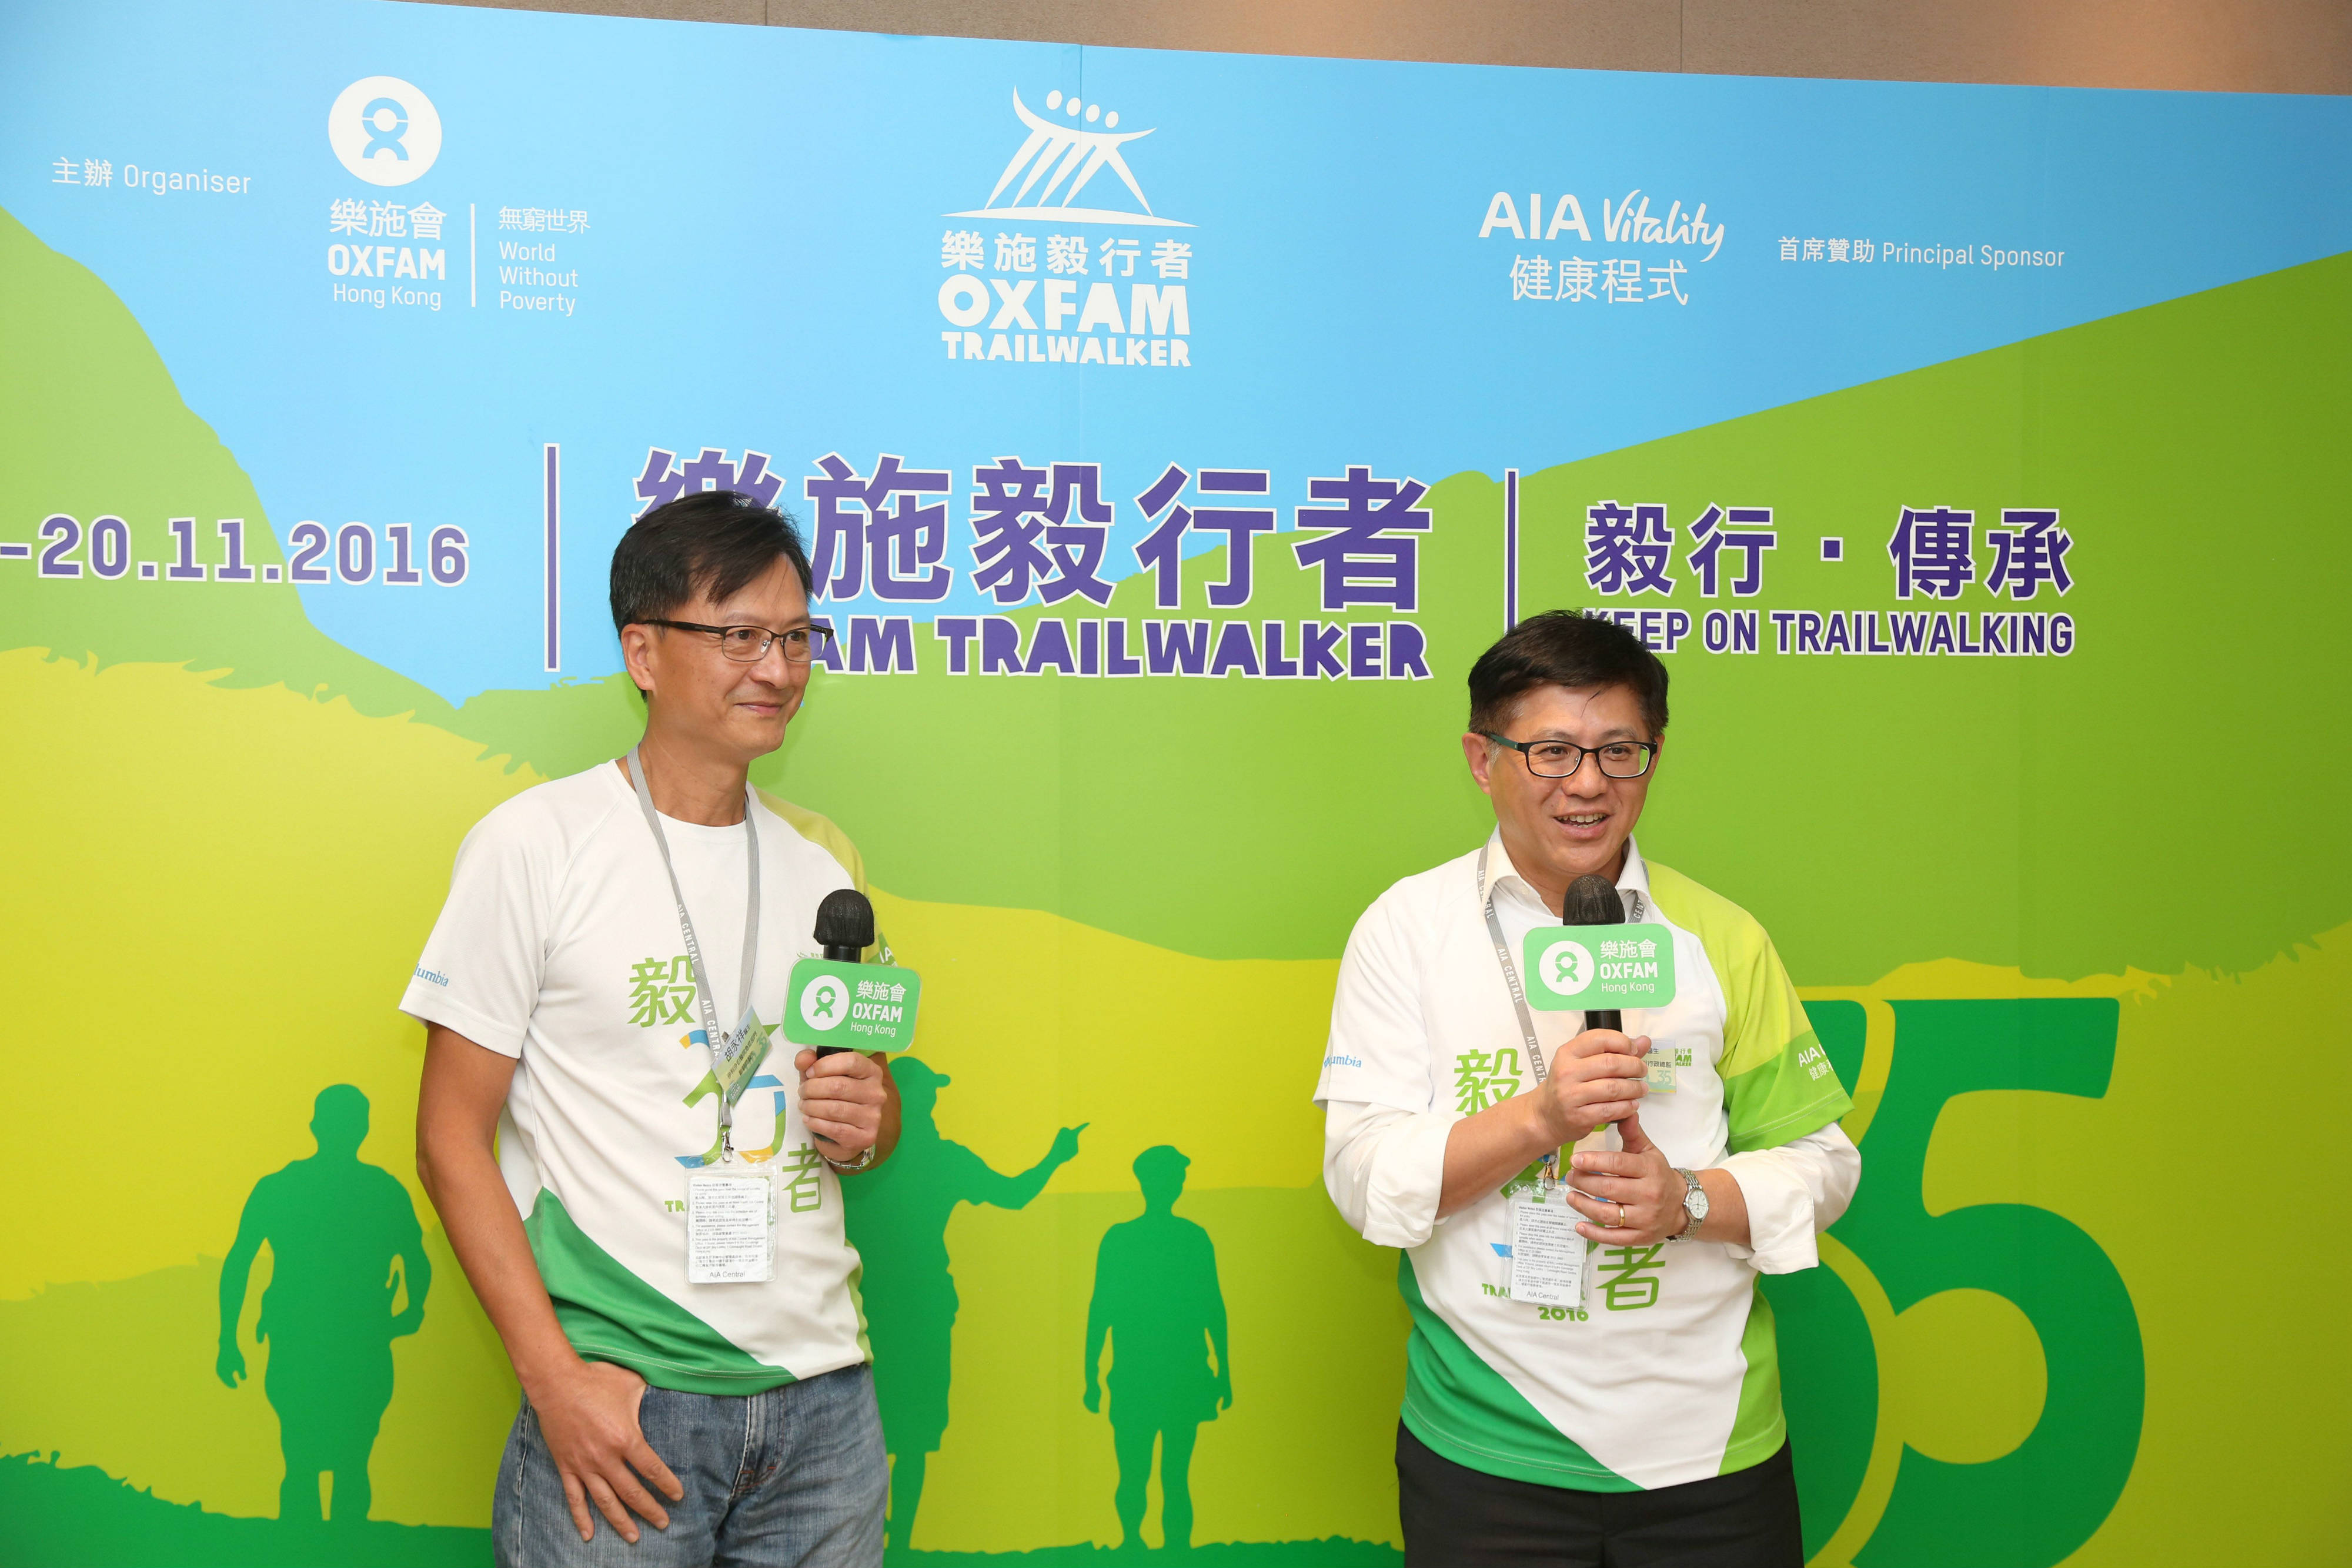 Long-time medical volunteers and experienced trailwalkers Dr. Ho Hiu Fai (right) and Dr. Kenneth Wu (left)  talked about their passion for Oxfam Trailwalker.